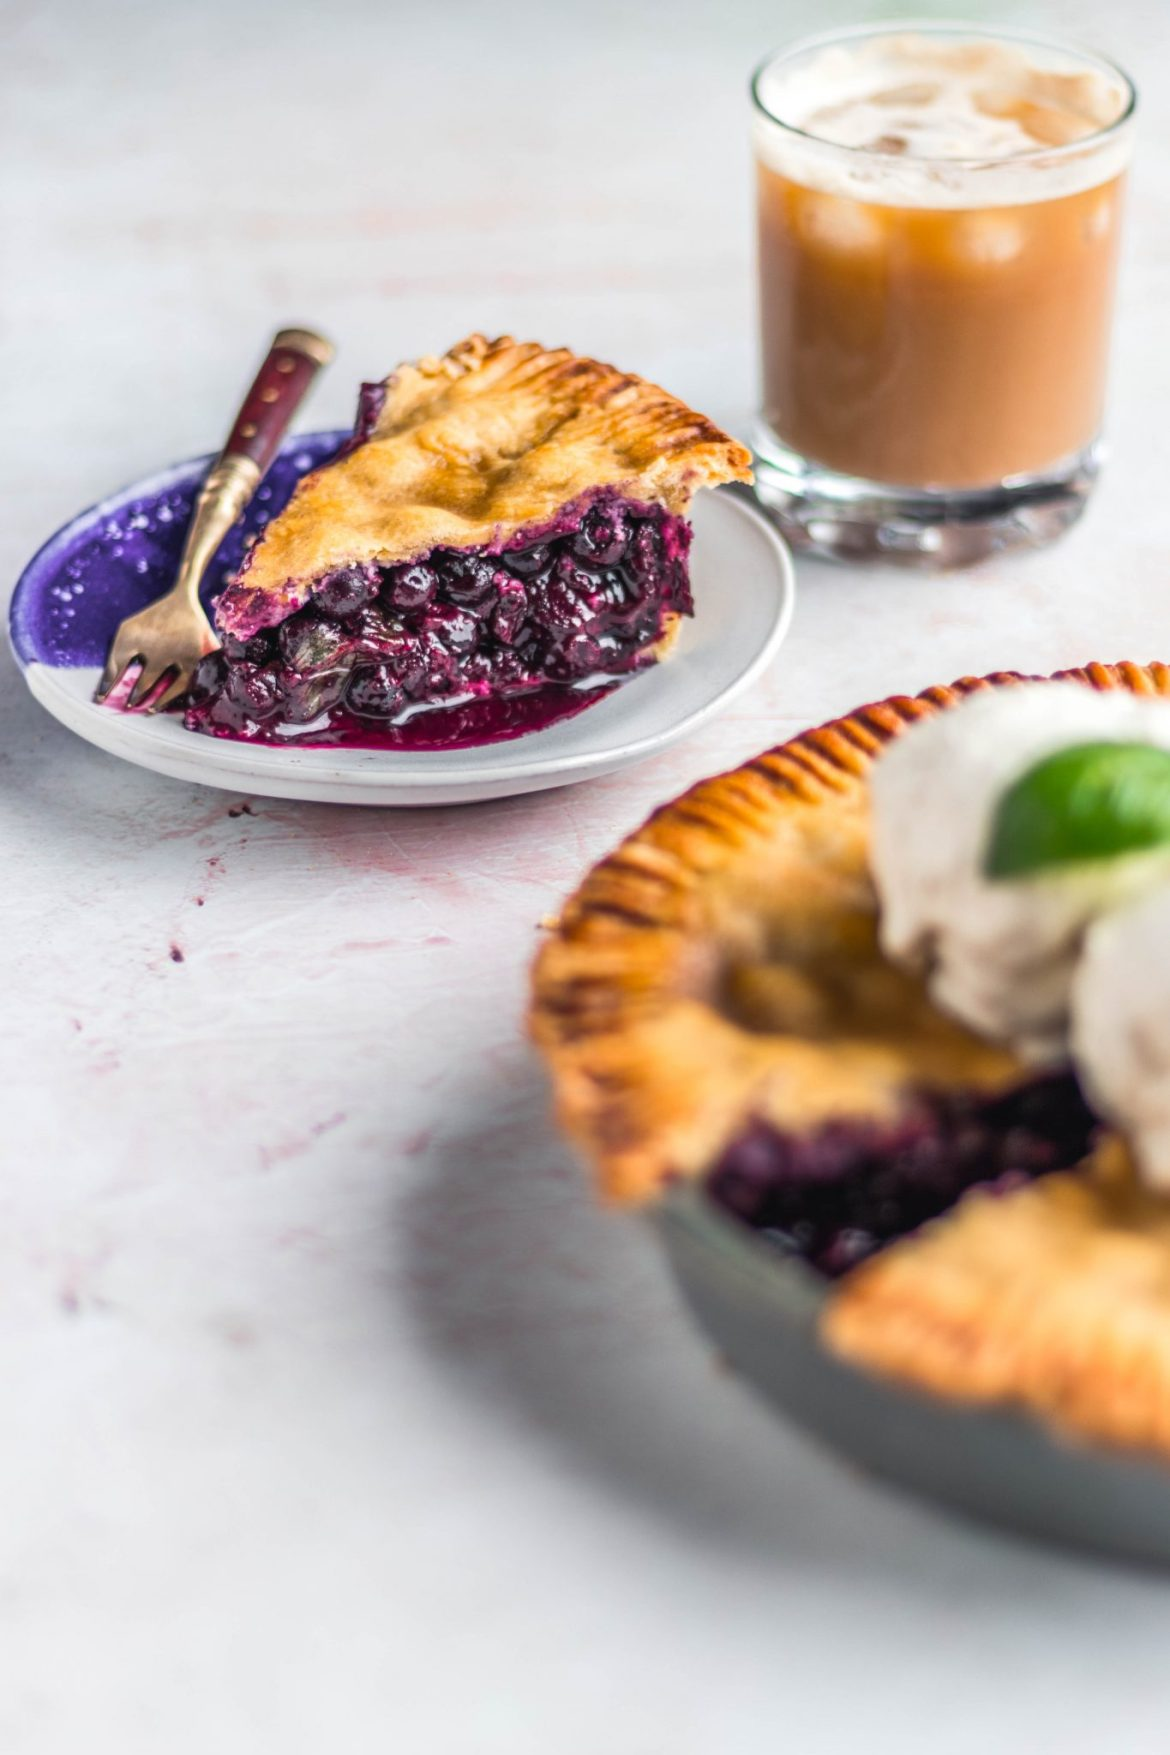 Vegan Blueberry Basil Pie